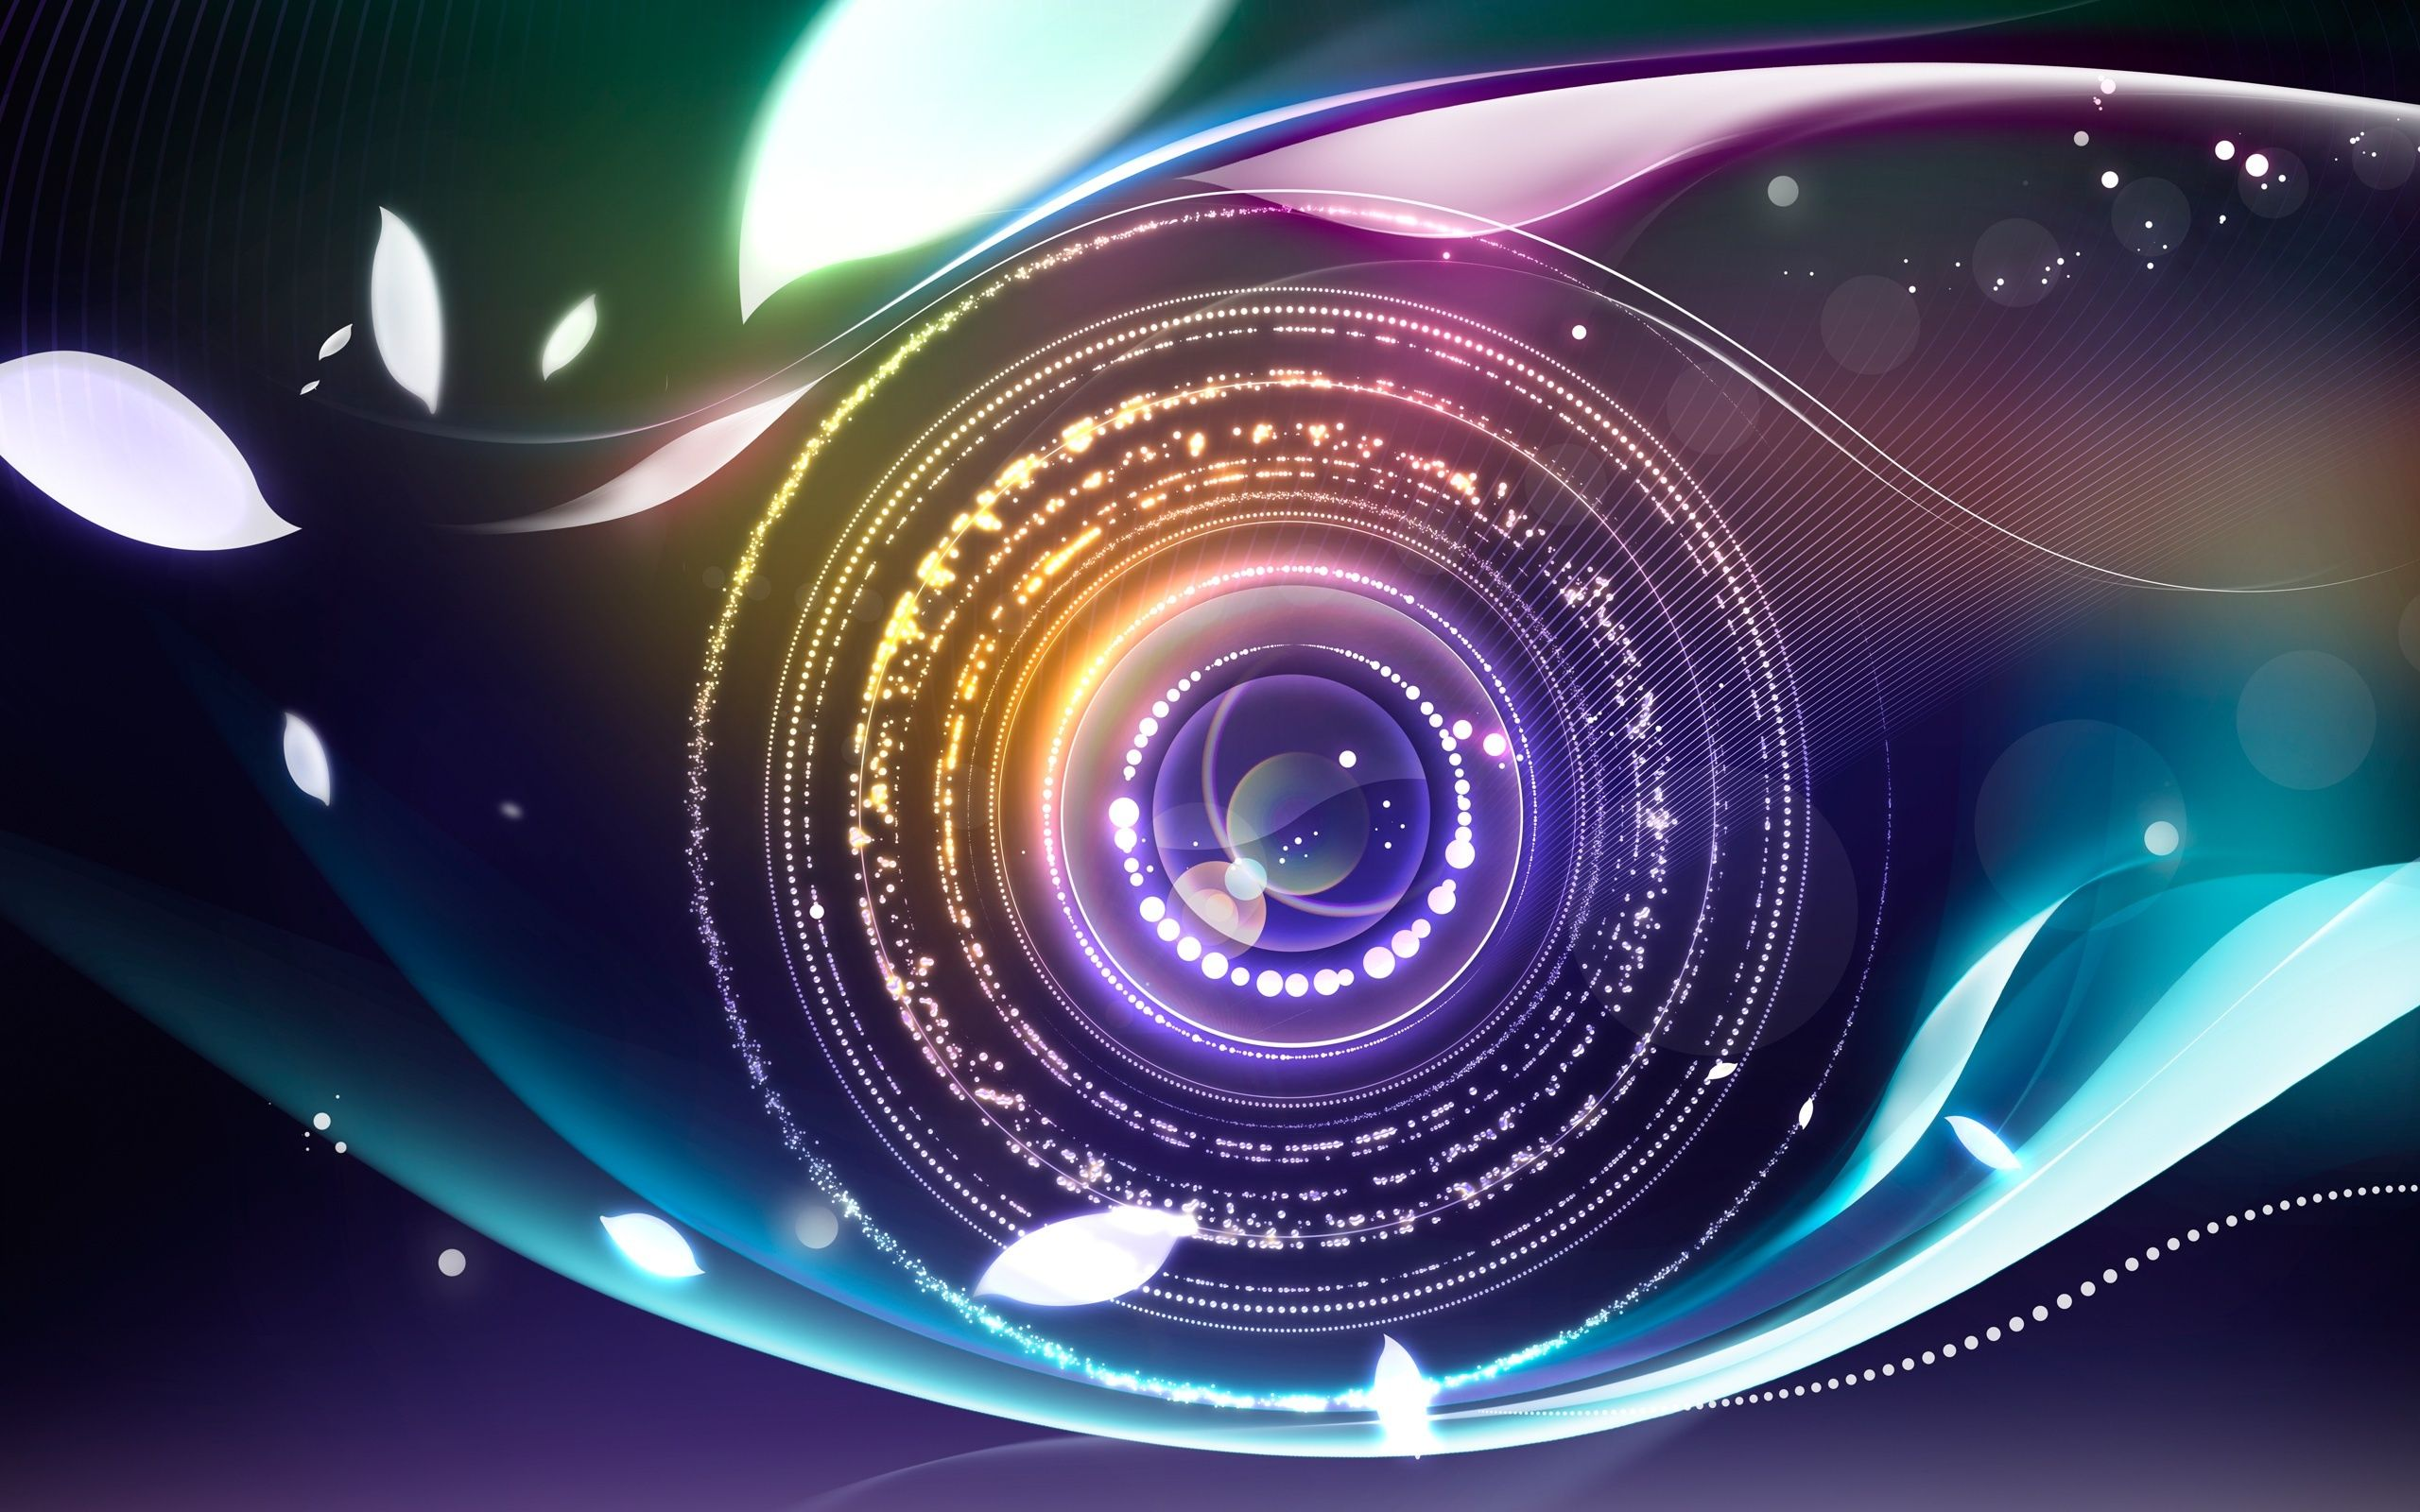 camera_lens_colored_abstract-wide